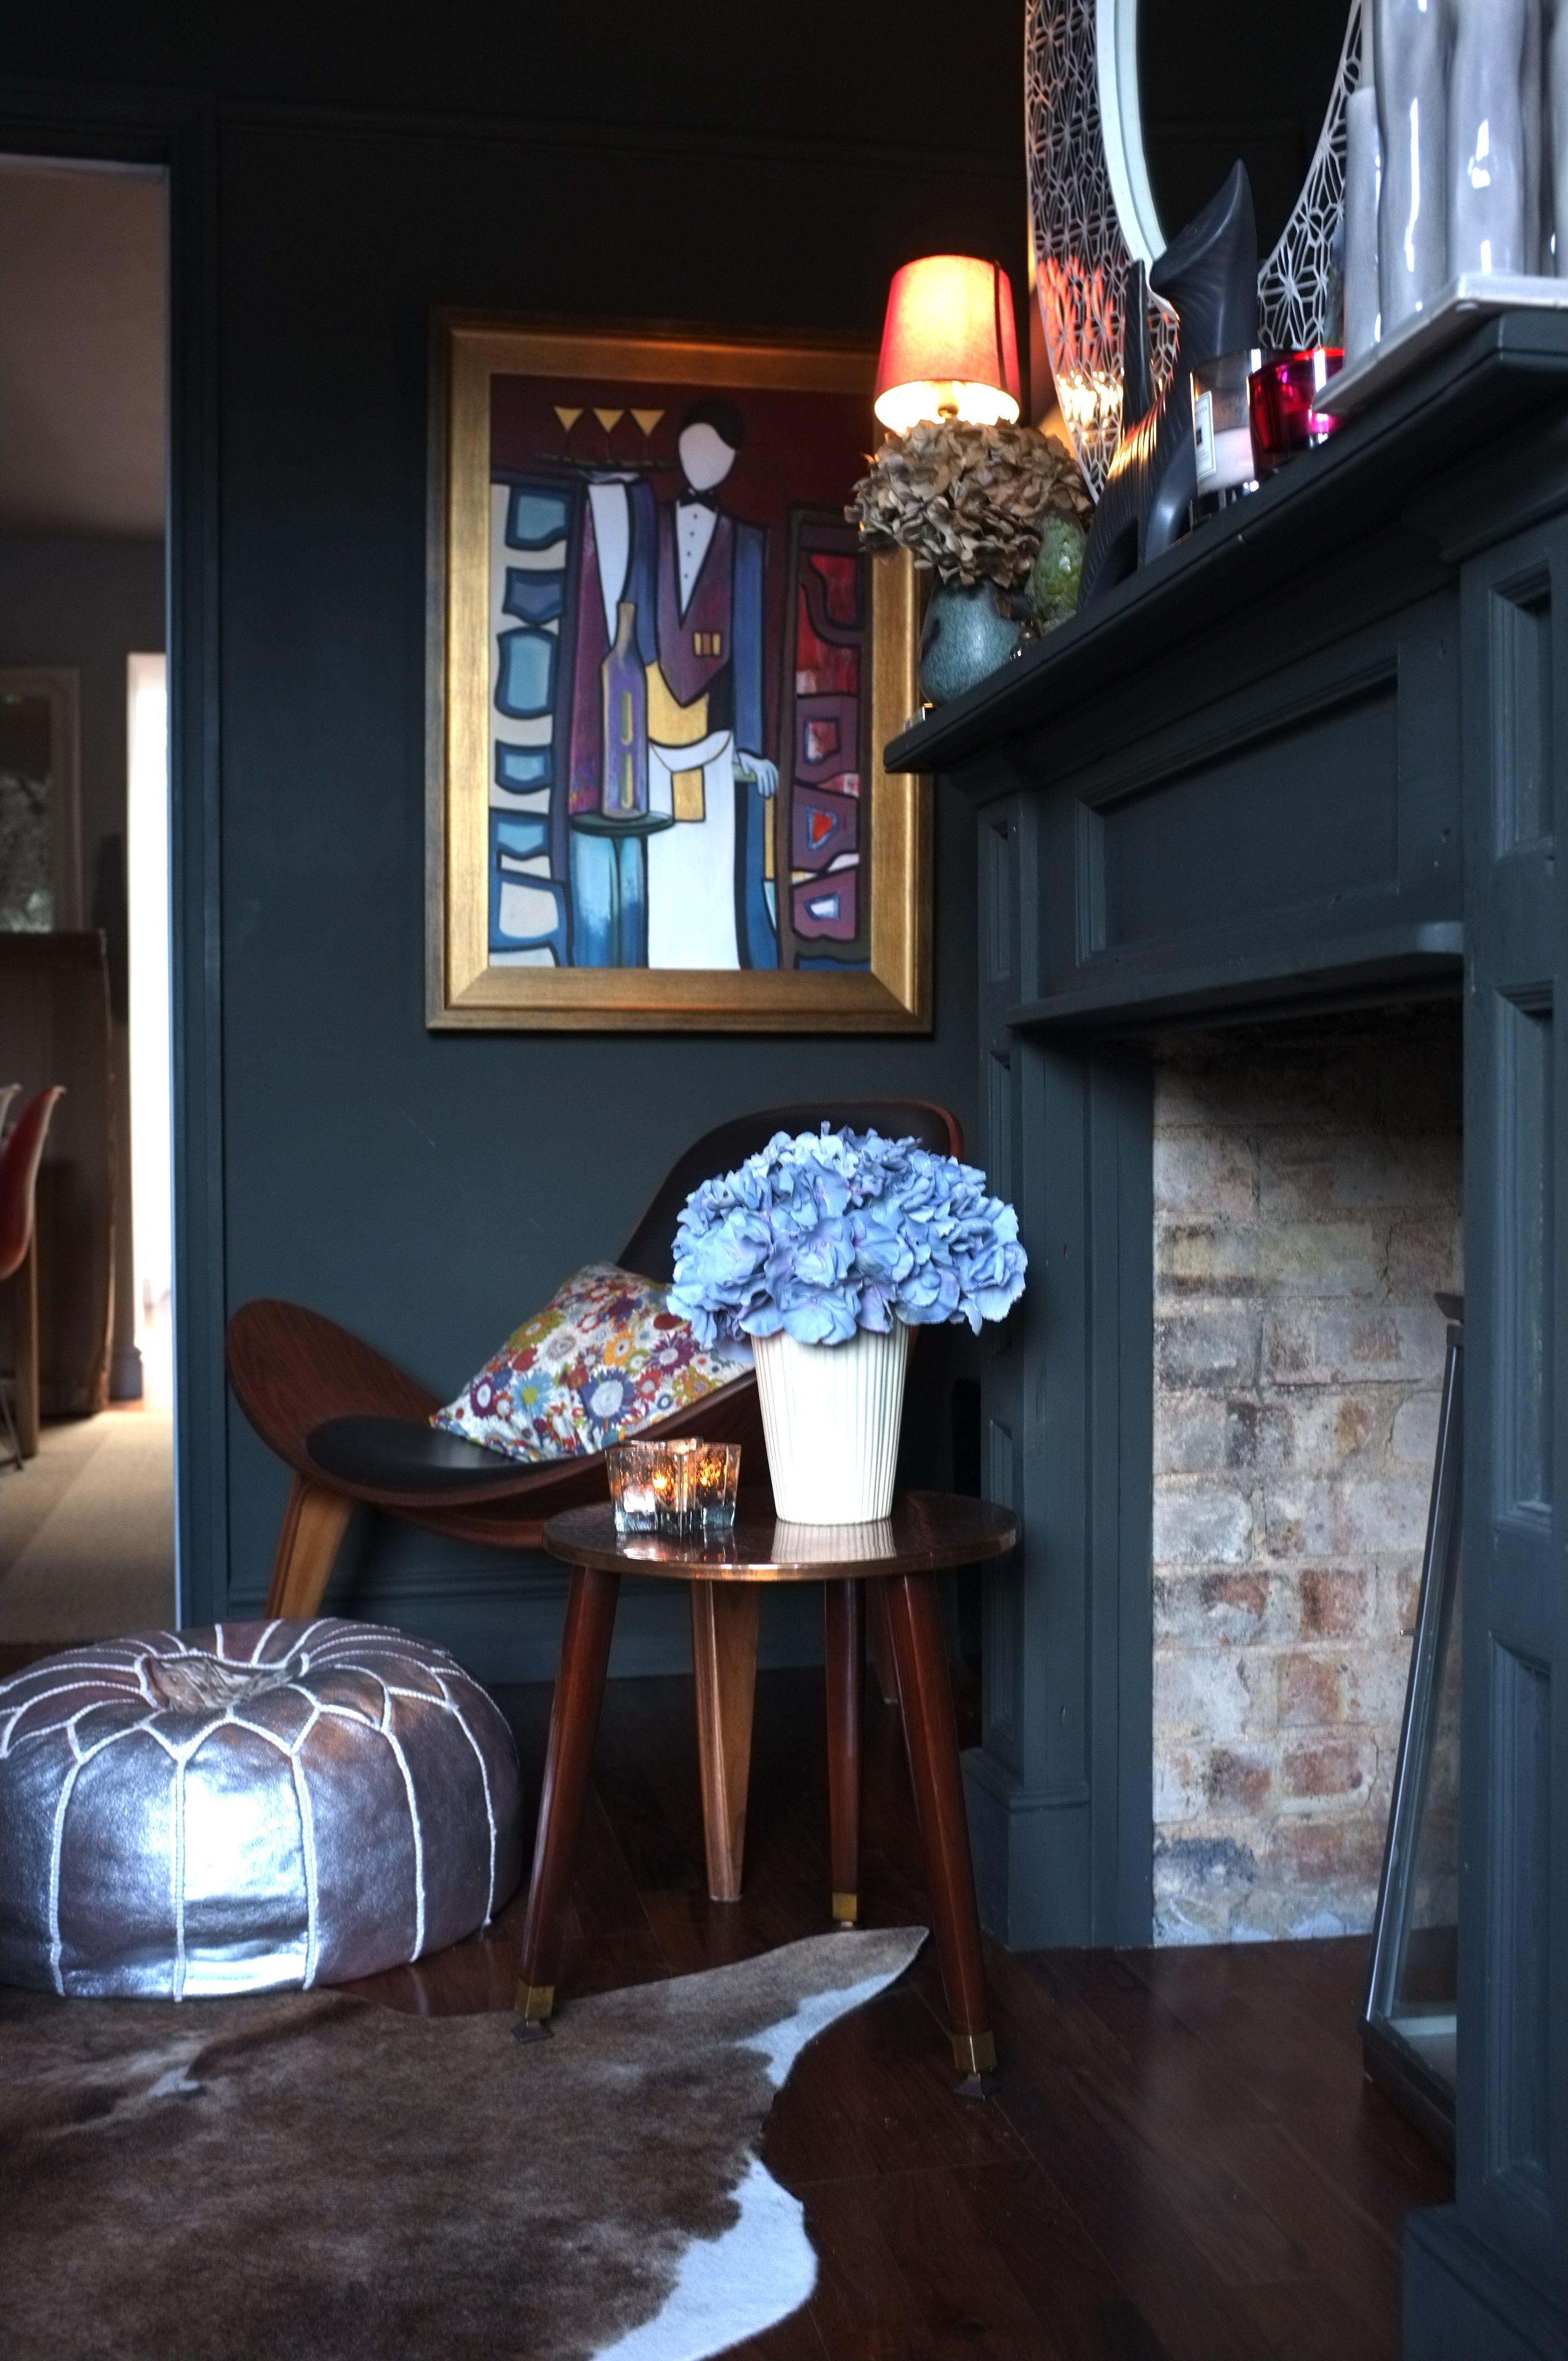 My living room painted head to toe in Farrow & Ball Studio Green